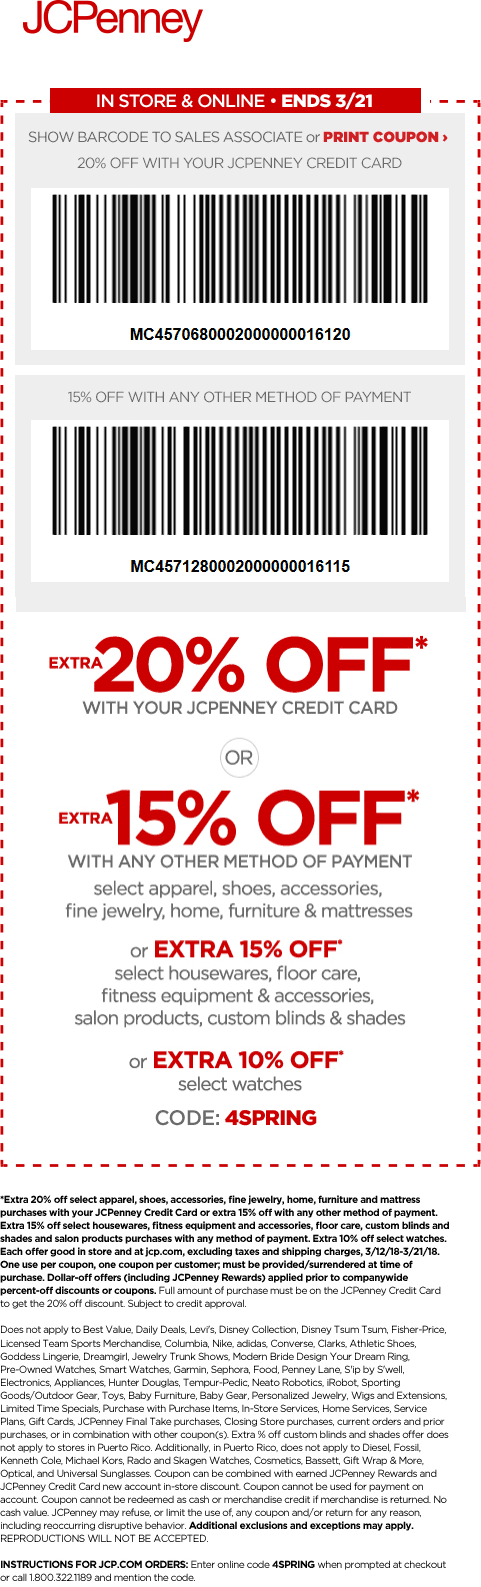 JCPenney Coupon May 2018 15% off at JCPenney, or online via promo code 4SPRING